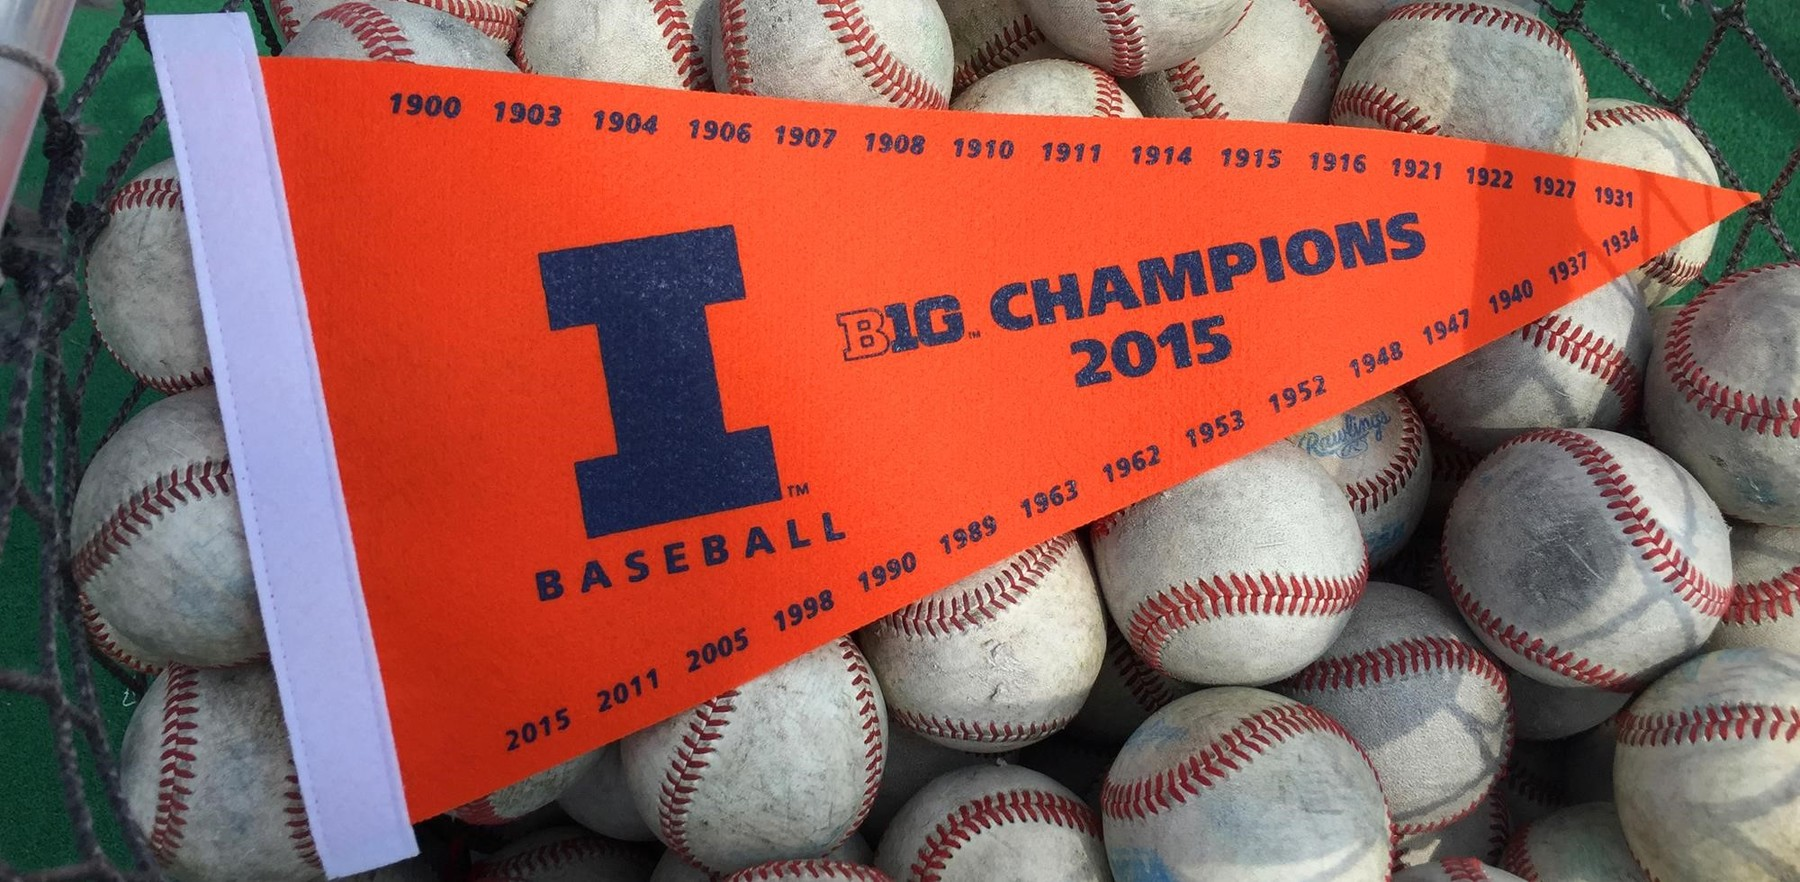 image of the Illini pennant surrounded by baseballs